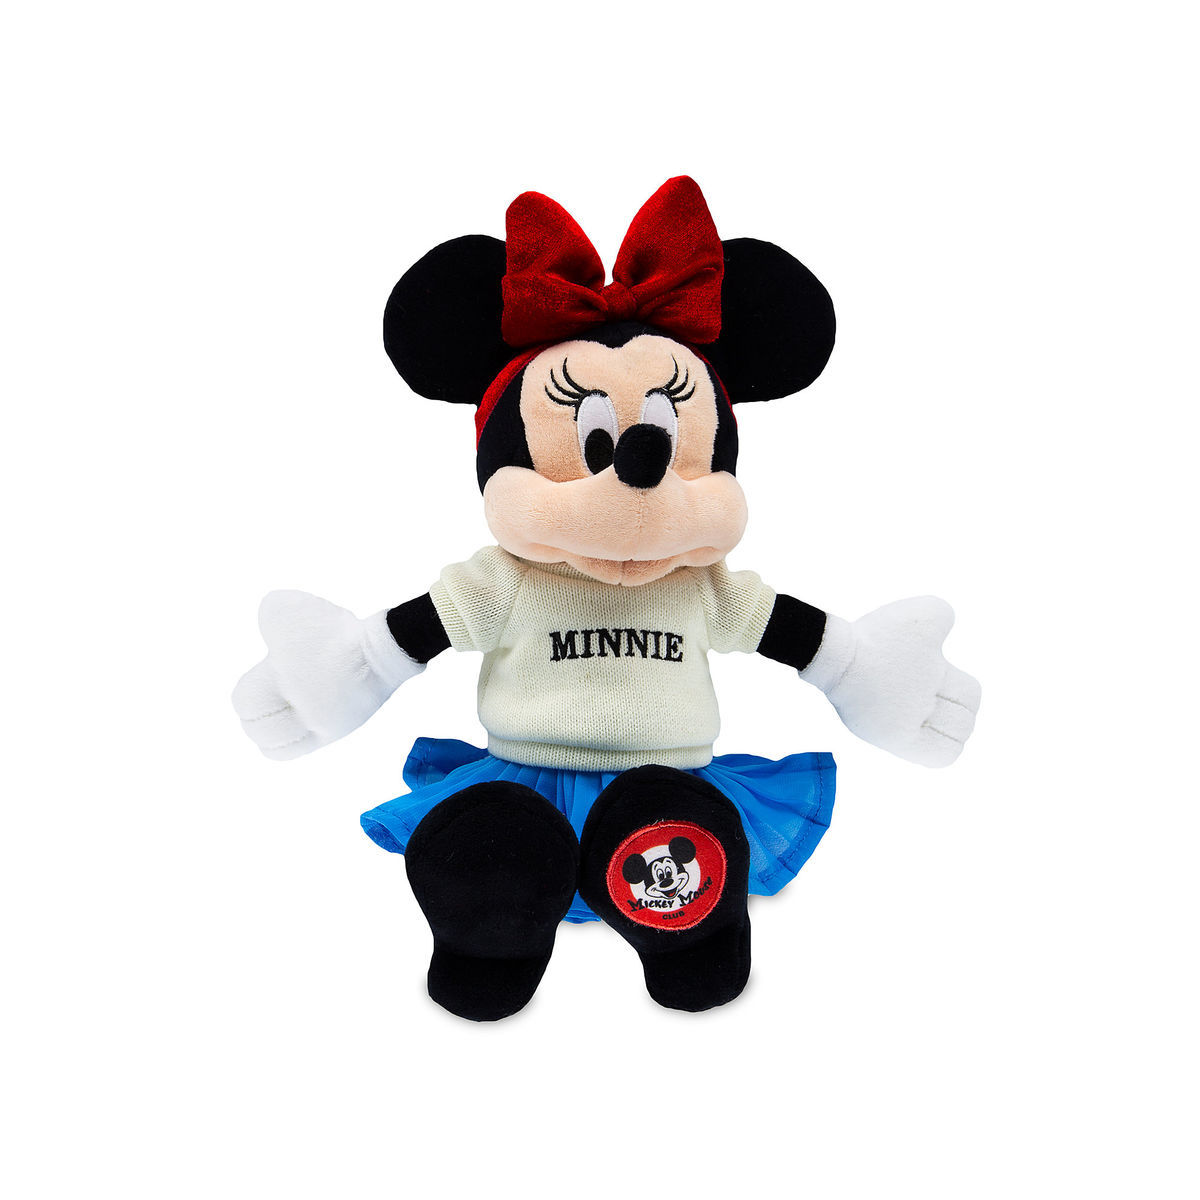 Minnie Mouse Plush The Mickey Mouse Club Small Shopdisney